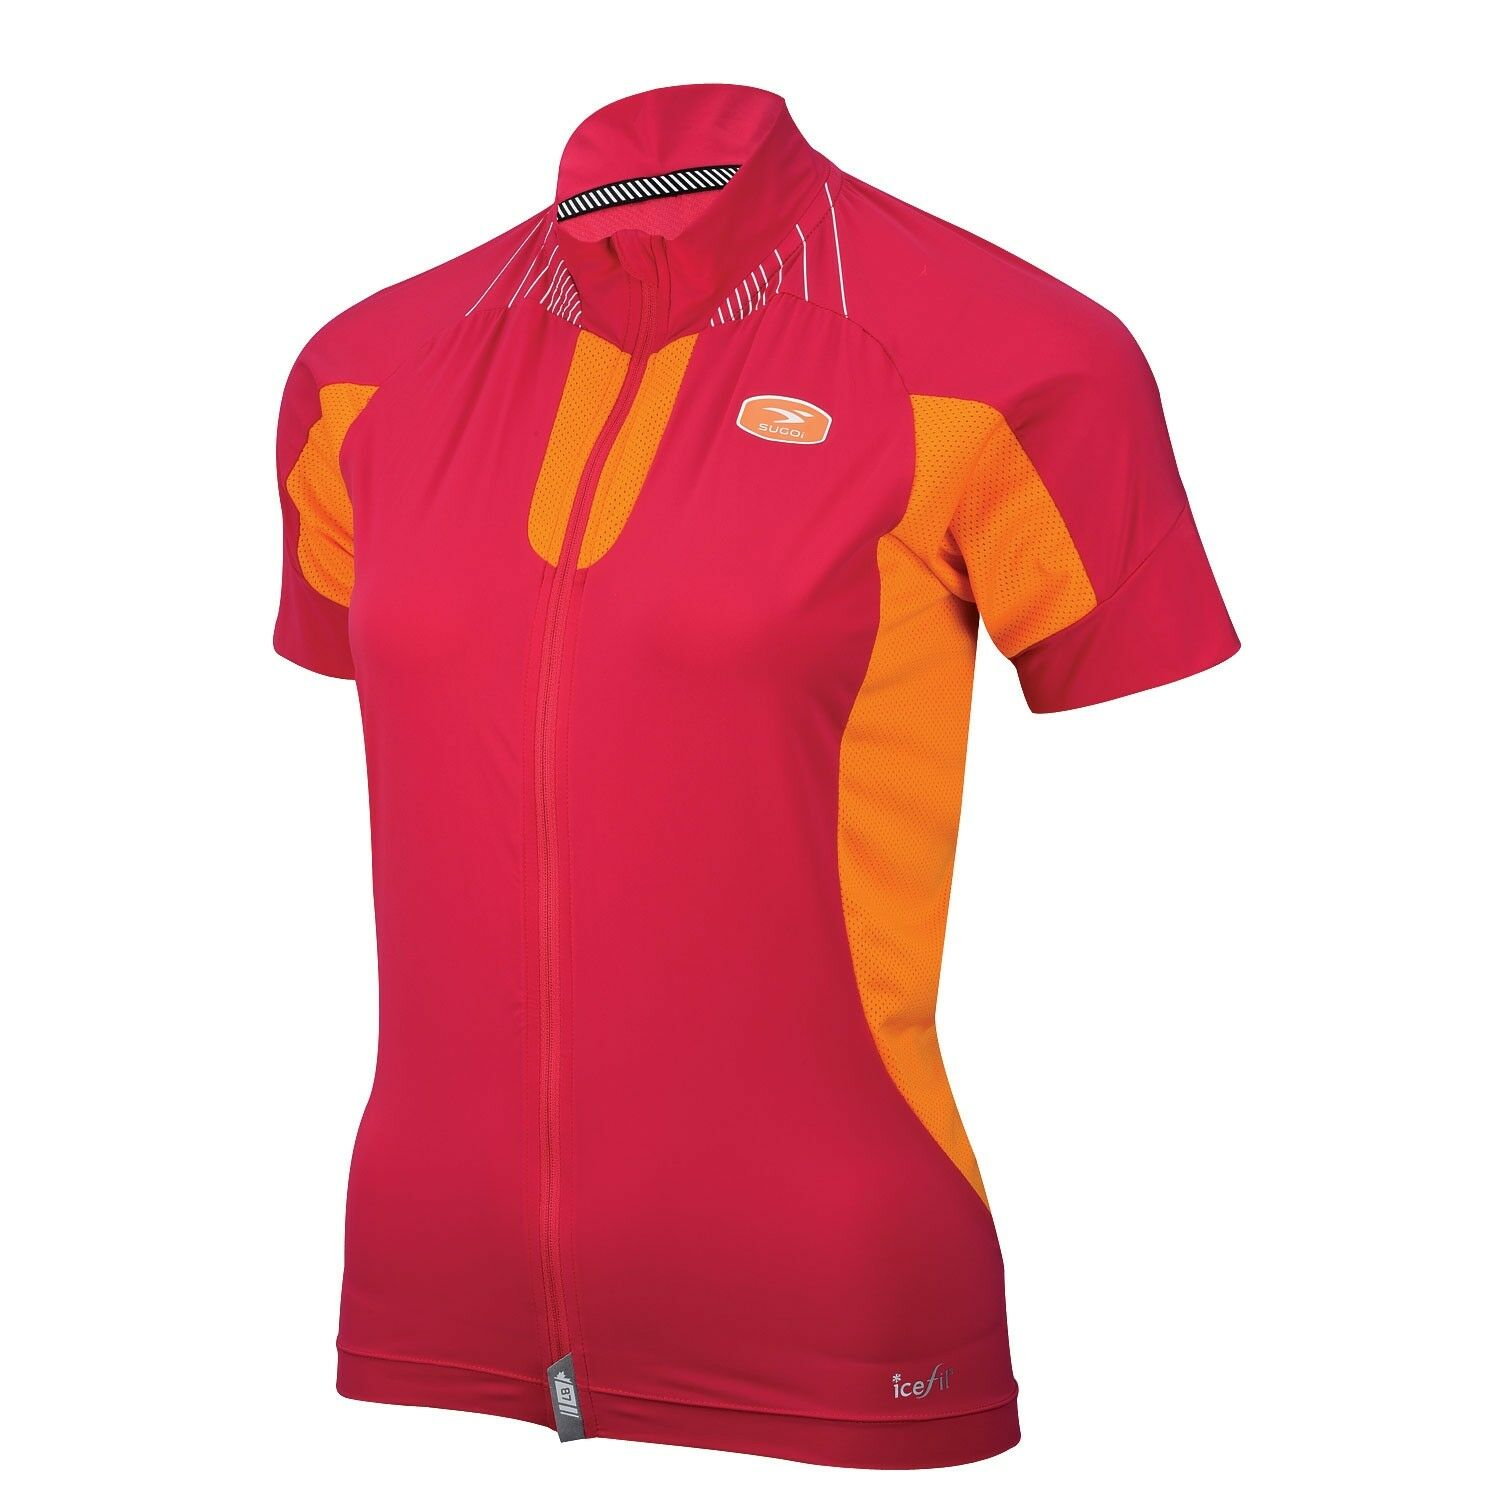 Sugoi Women's RS Ice Jersey - Size Large - Reg. 124.99